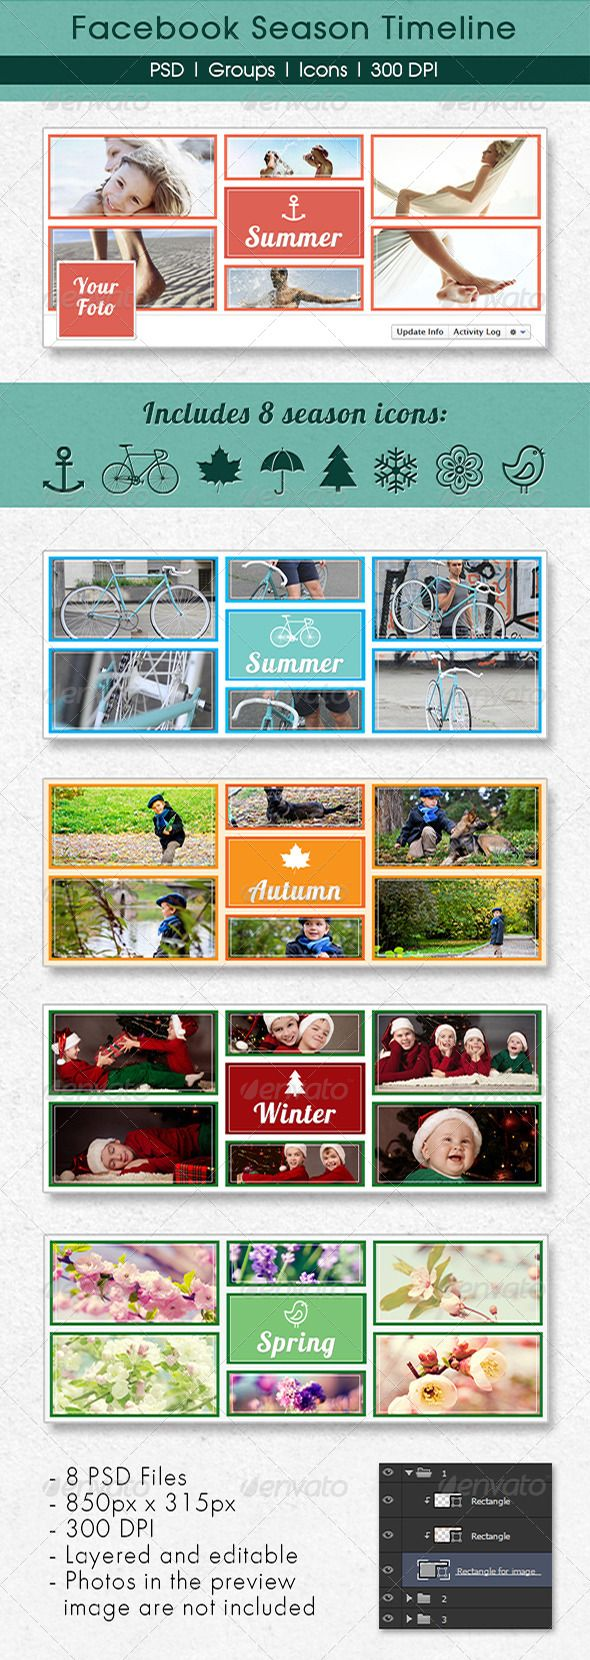 Season Fb Timeline  #GraphicRiver         - 850×315 px (350 DPI) - 8 PSD Files - Use smart object - Fully Layered and editable  - Includes 8 season icons - Photos in the preview image are not included - Includes instruction how to use.  Used Font: Lobster  .impallari /lobster/     Created: 20September13 GraphicsFilesIncluded: PhotoshopPSD HighResolution: Yes Layered: Yes MinimumAdobeCSVersion: CS6 PixelDimensions: 850x315 Tags: autumn #cover #facebook #season #spring #summer #winter